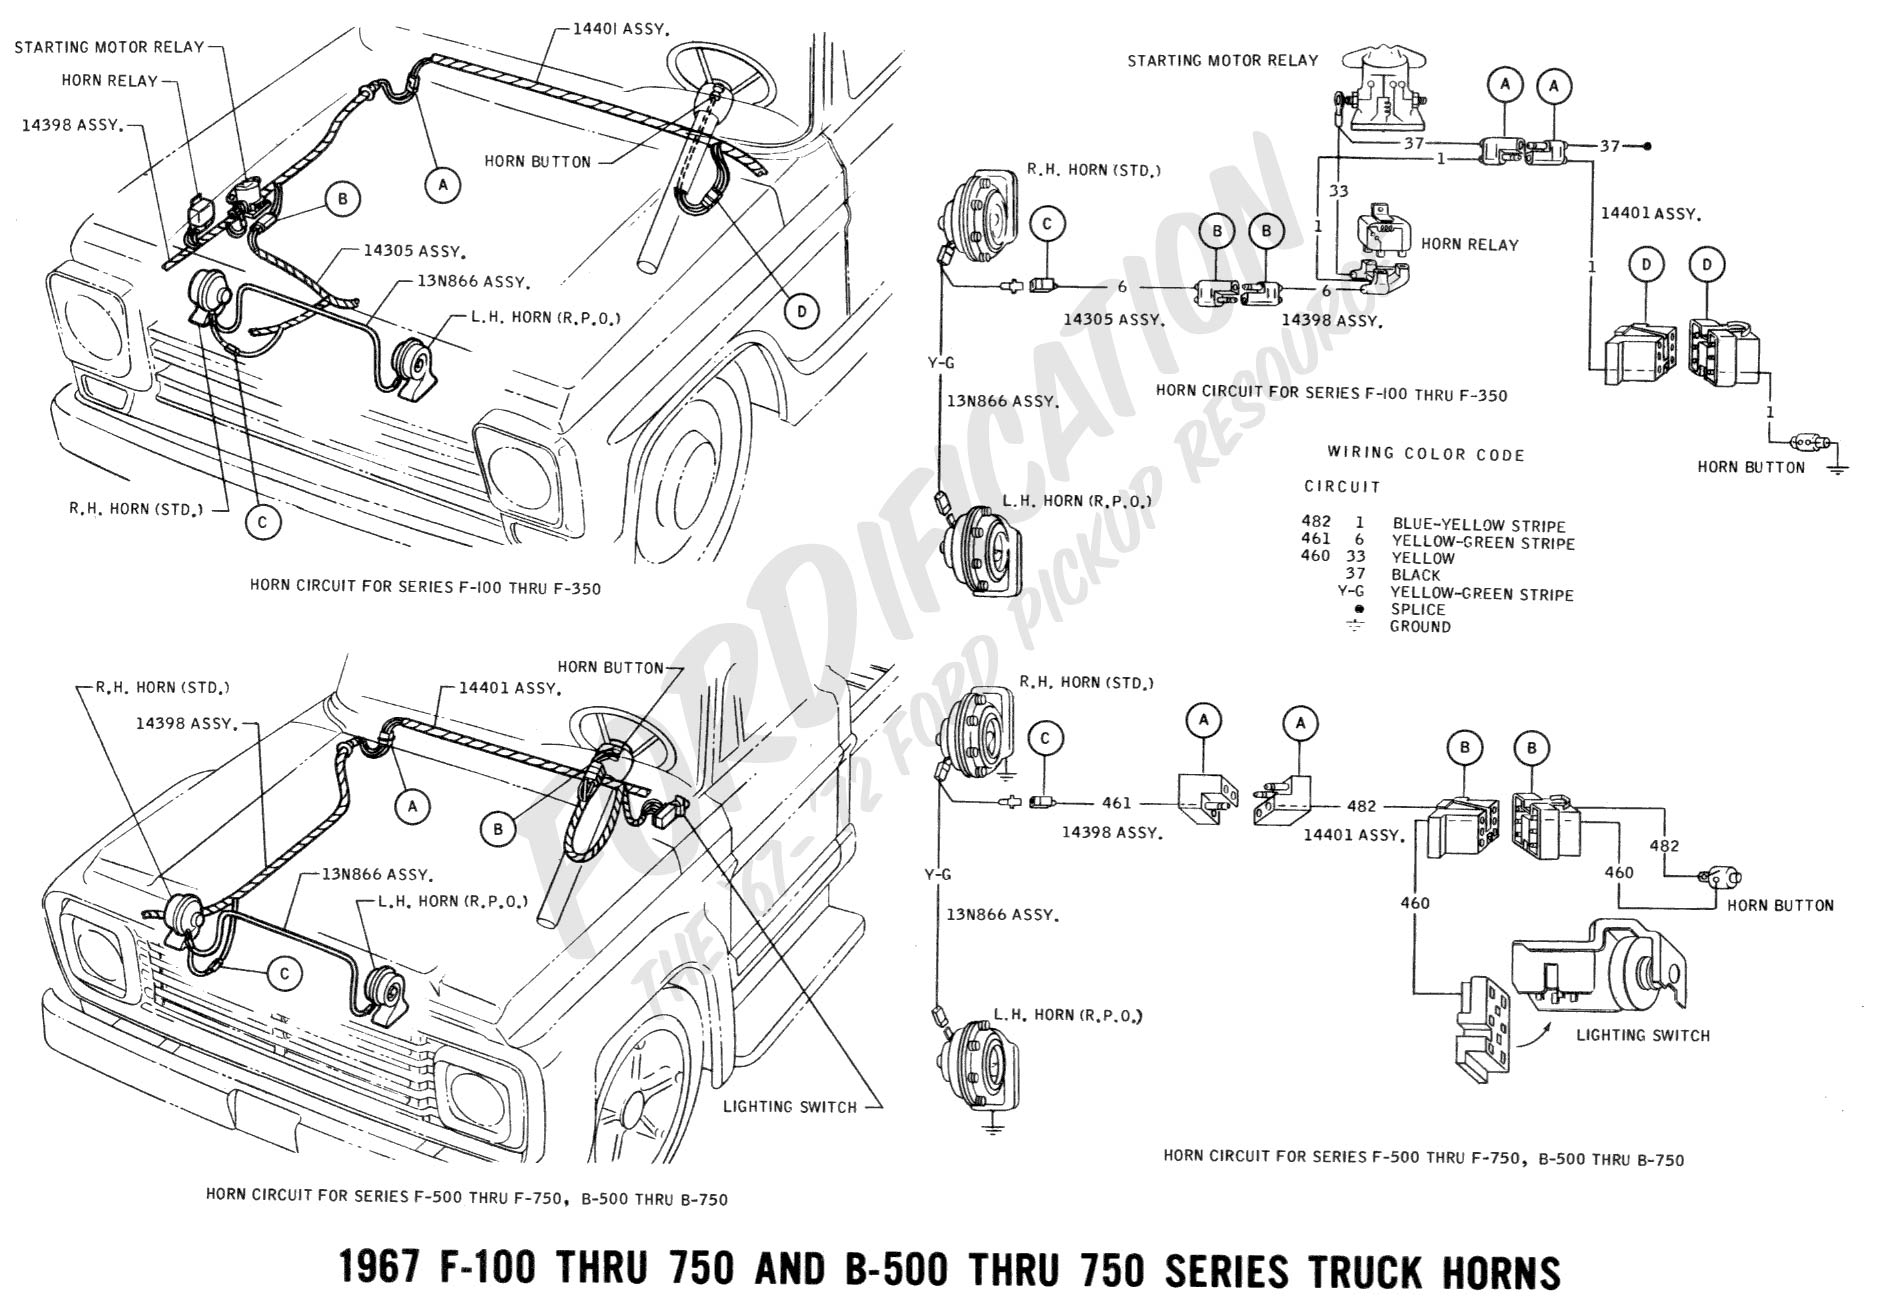 86 ford wiring diagram wiring diagram1986 ford f600 wiring diagram wiring diagramford truck technical drawings and schematics section h wiring1967 f